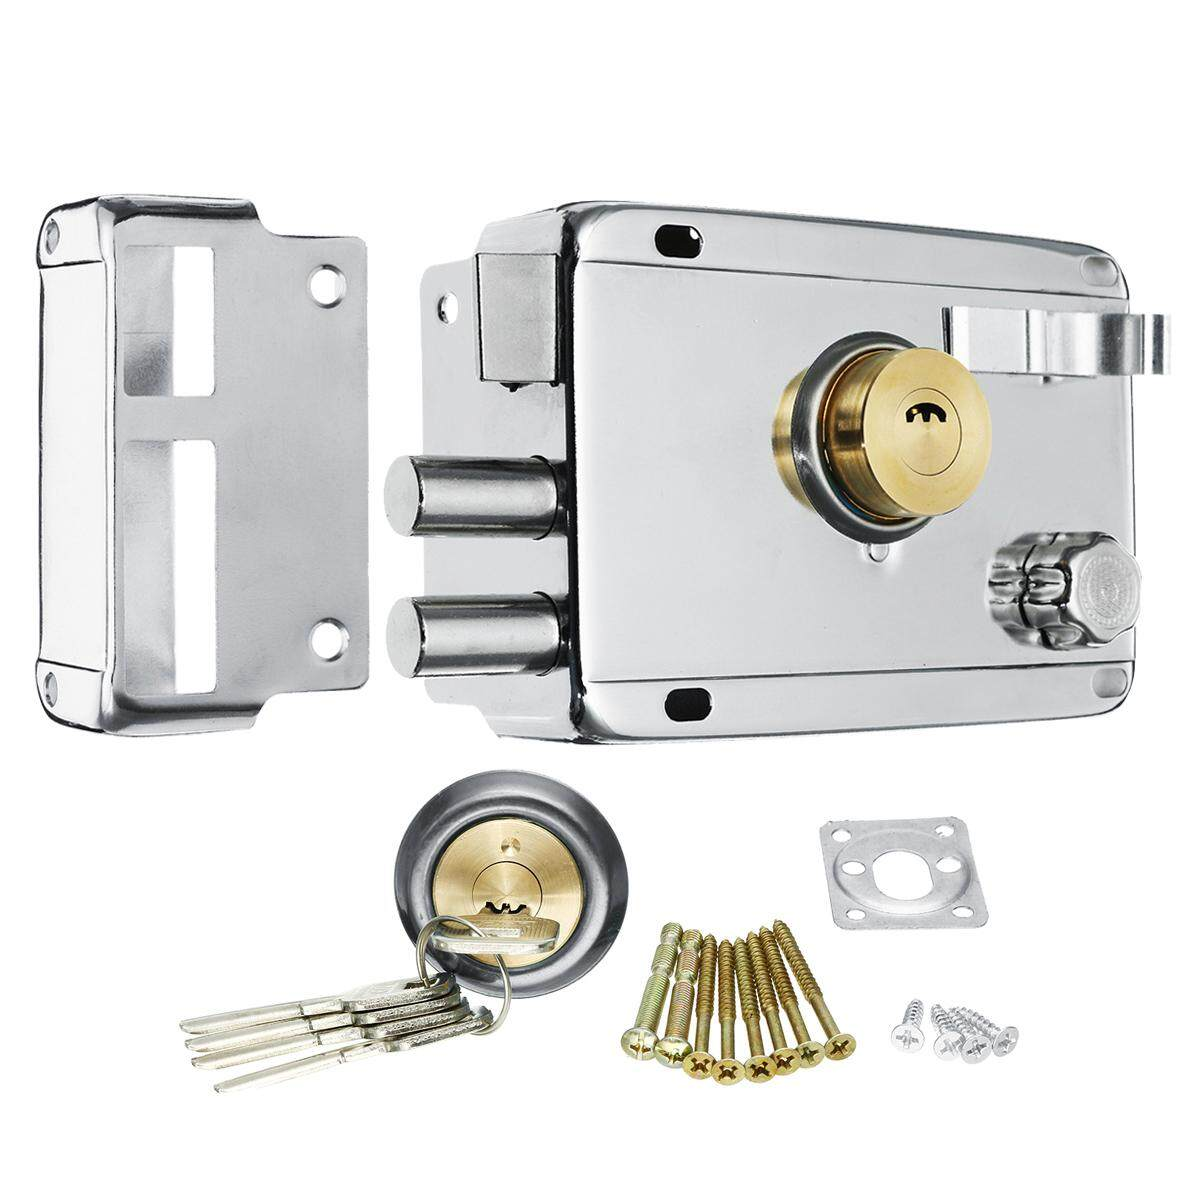 Exterior Iron Door Locks Security Anti-theft Lock Multiple Insurance Lock Wood Gate Lock For Furniture Hardware - intl